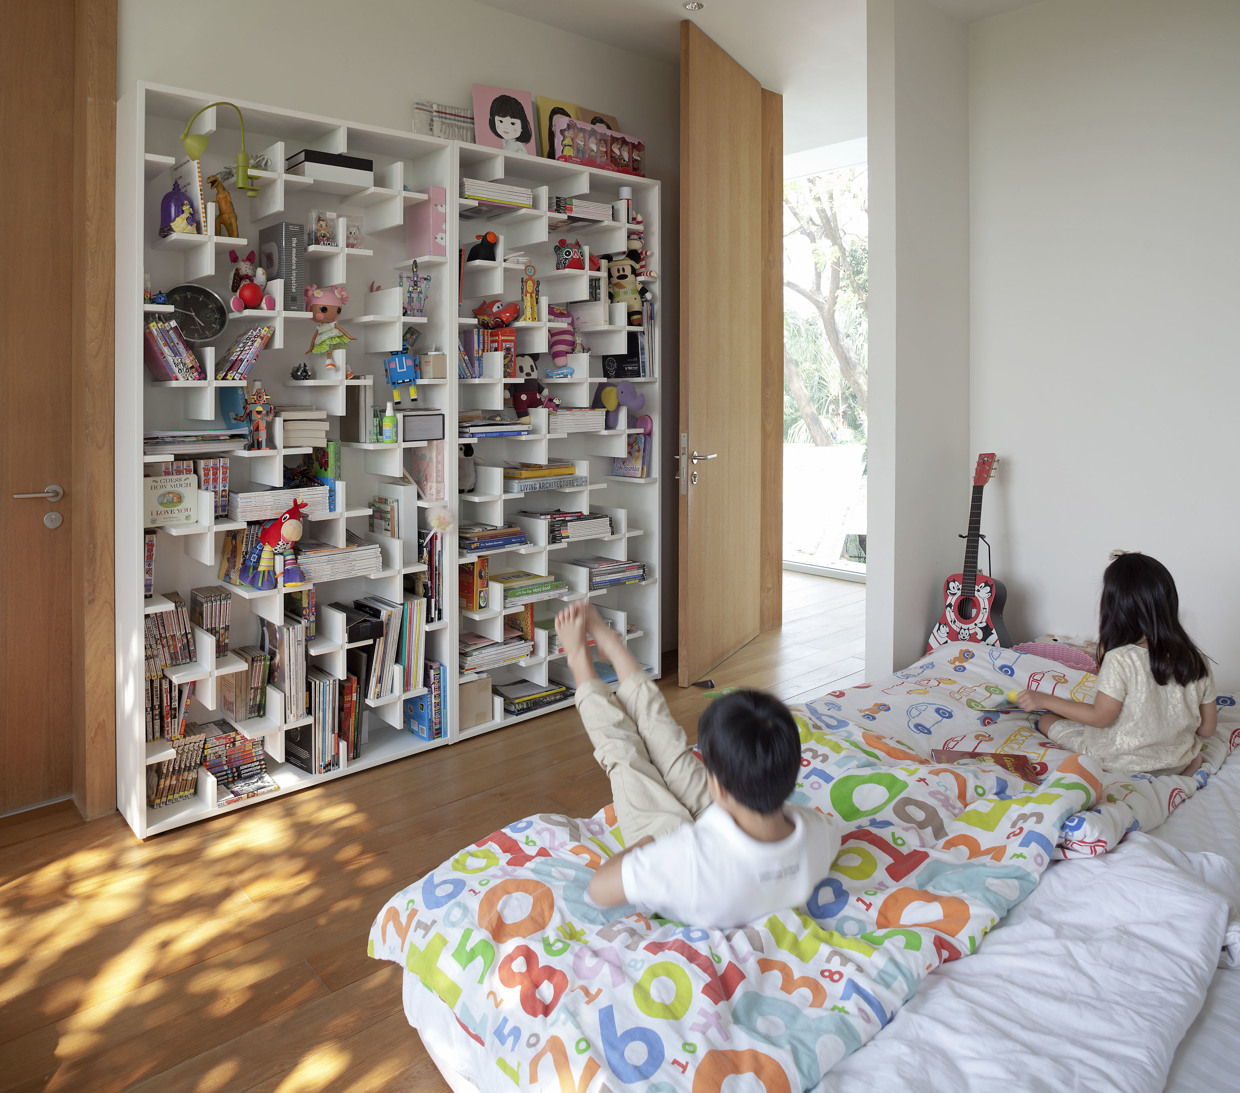 Creative kids room interior design ideas Creative interior ideas